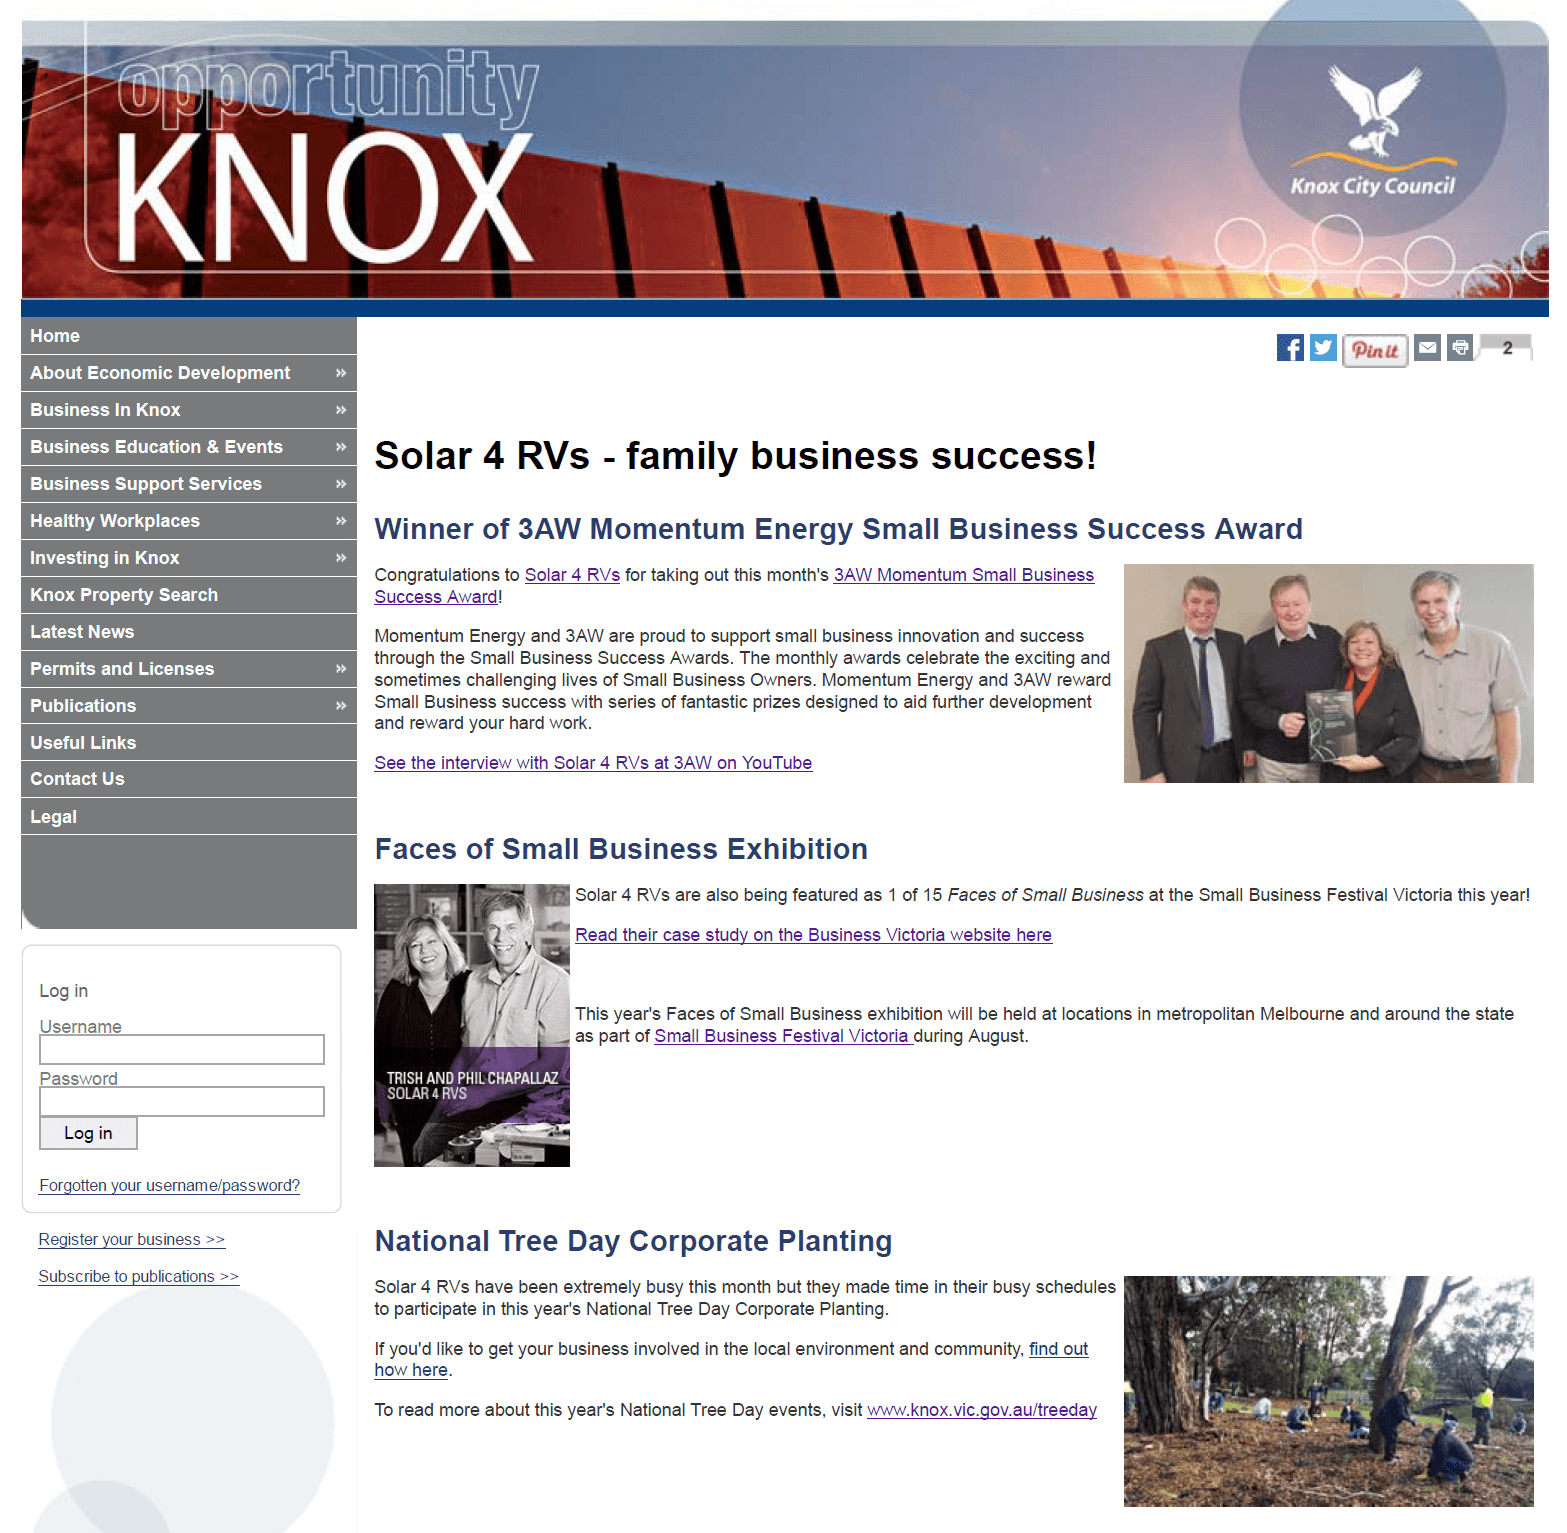 Knox Business Direct Website Solar 4 RVs family business success